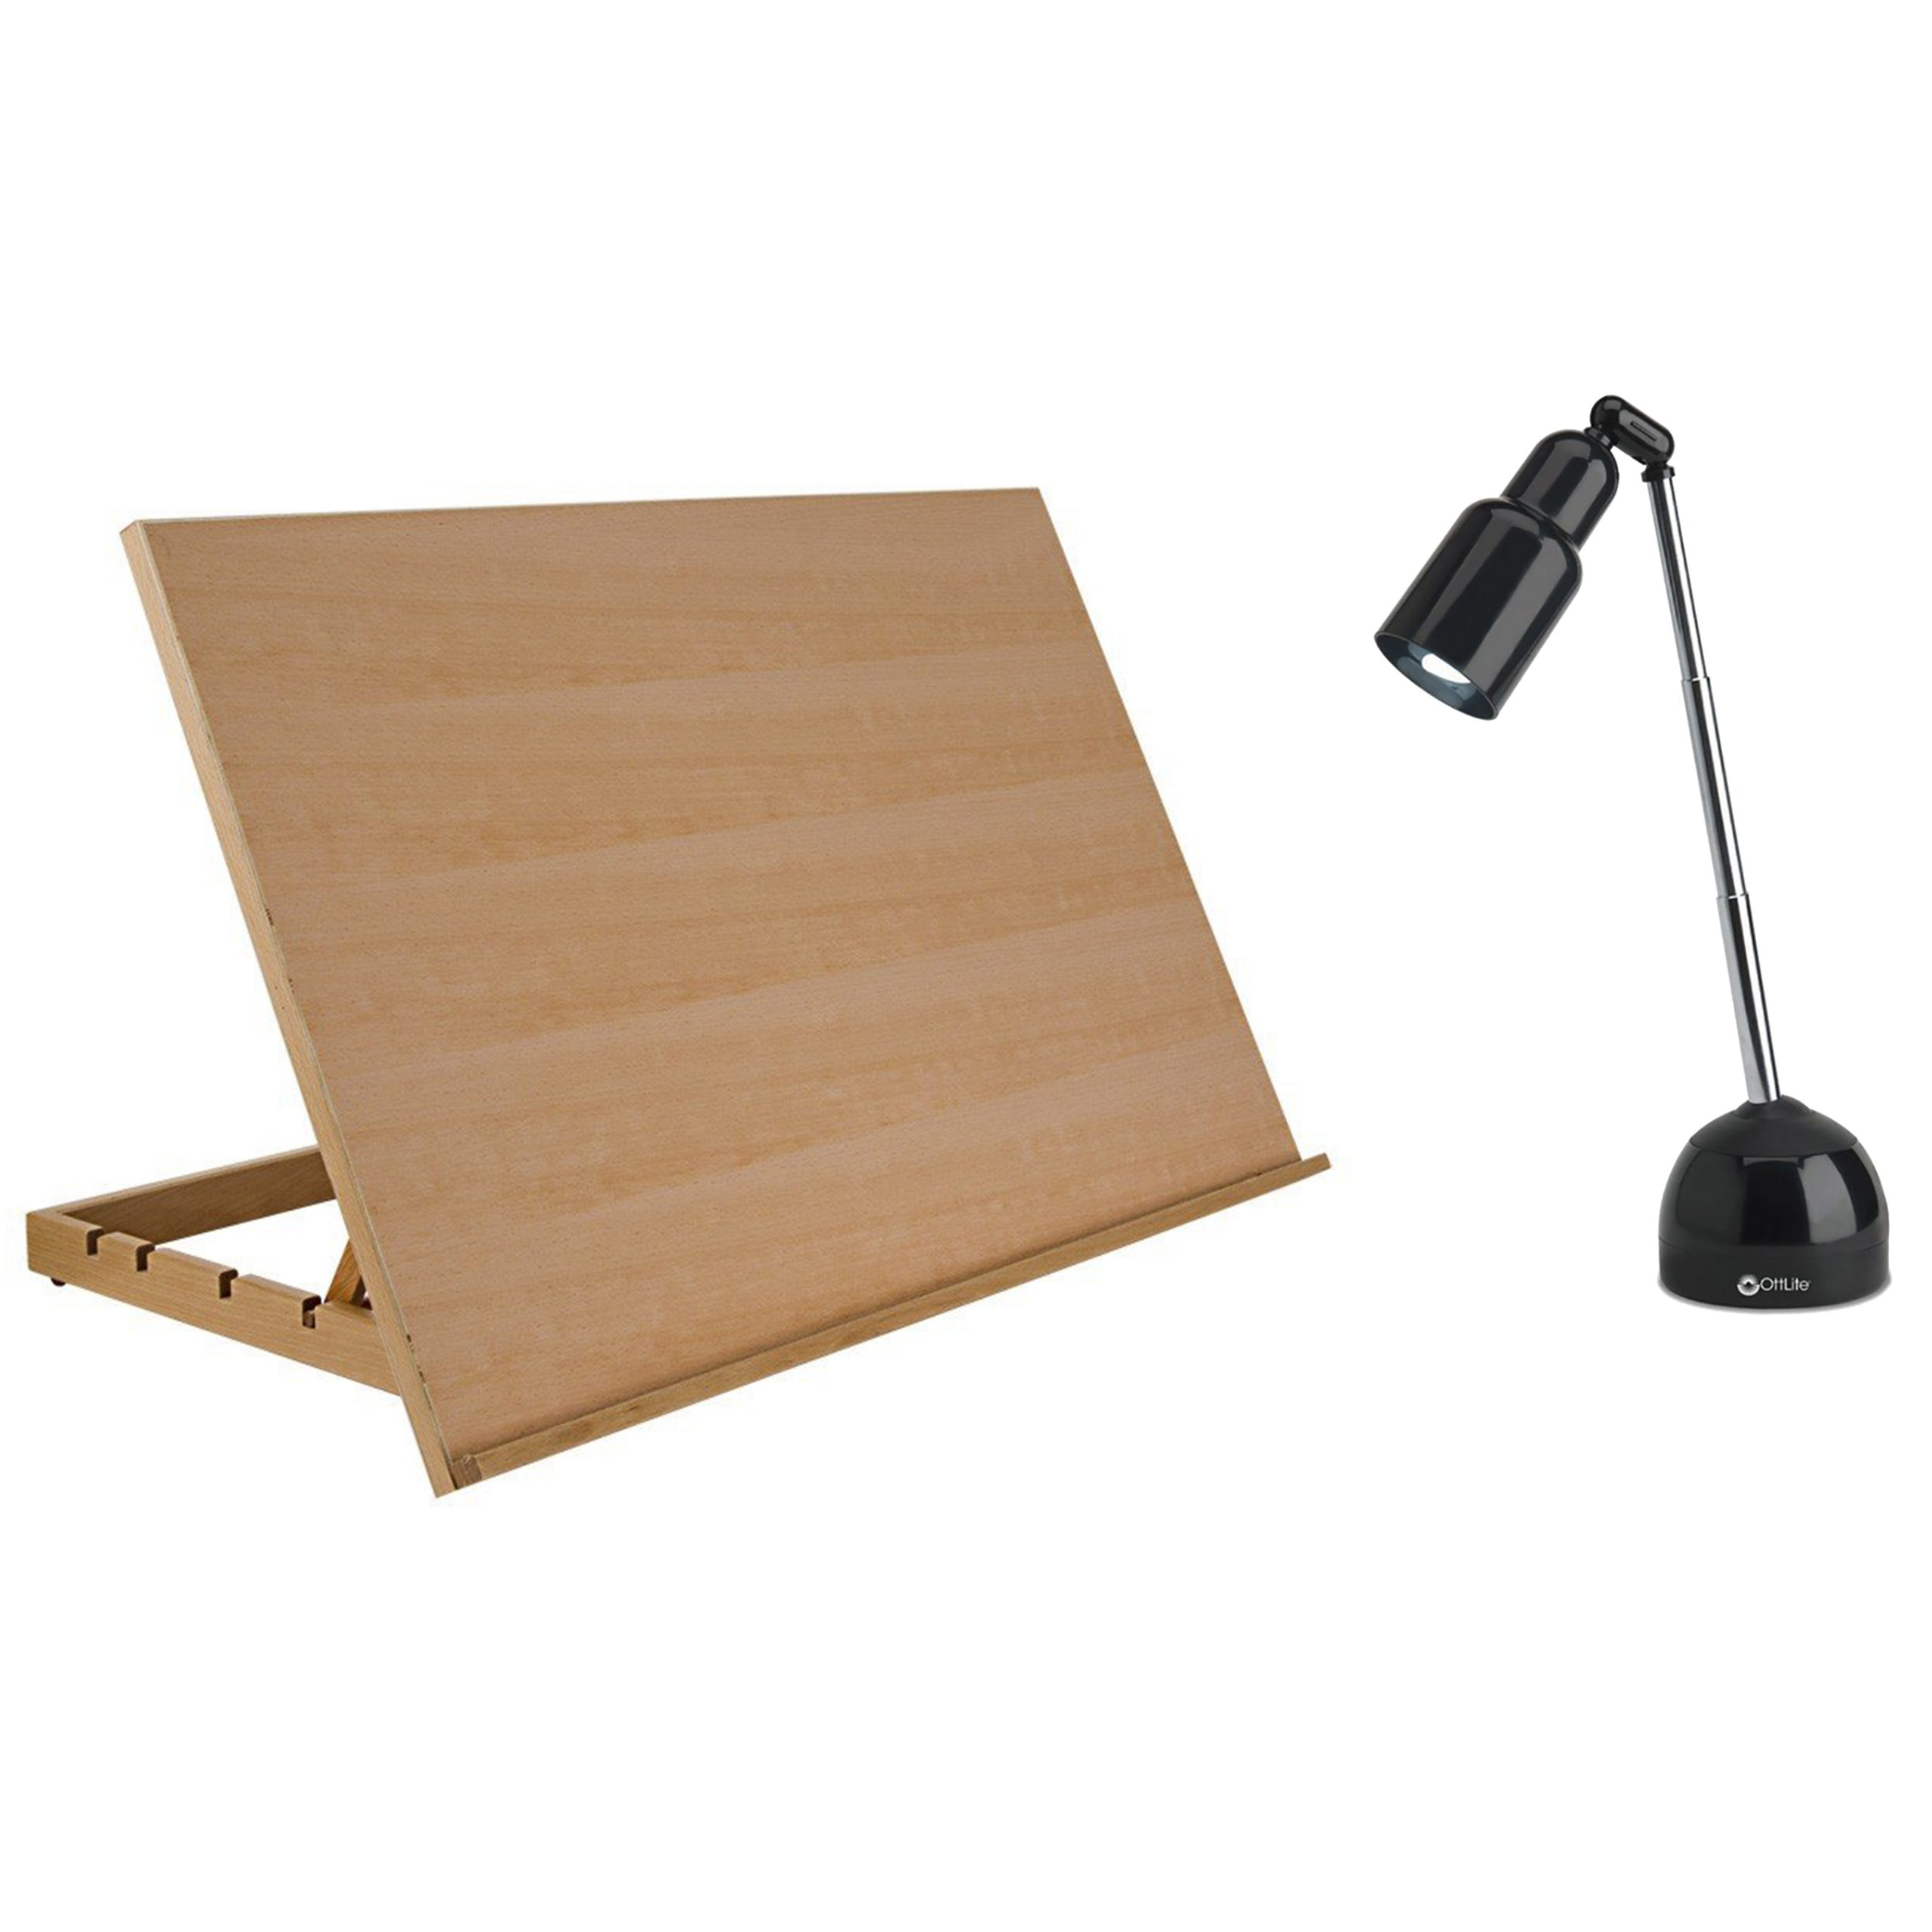 Details About Soho Urban Artist Wood Drawing Board Large 1975 X 30 With Desk Light Option in proportions 4800 X 4800